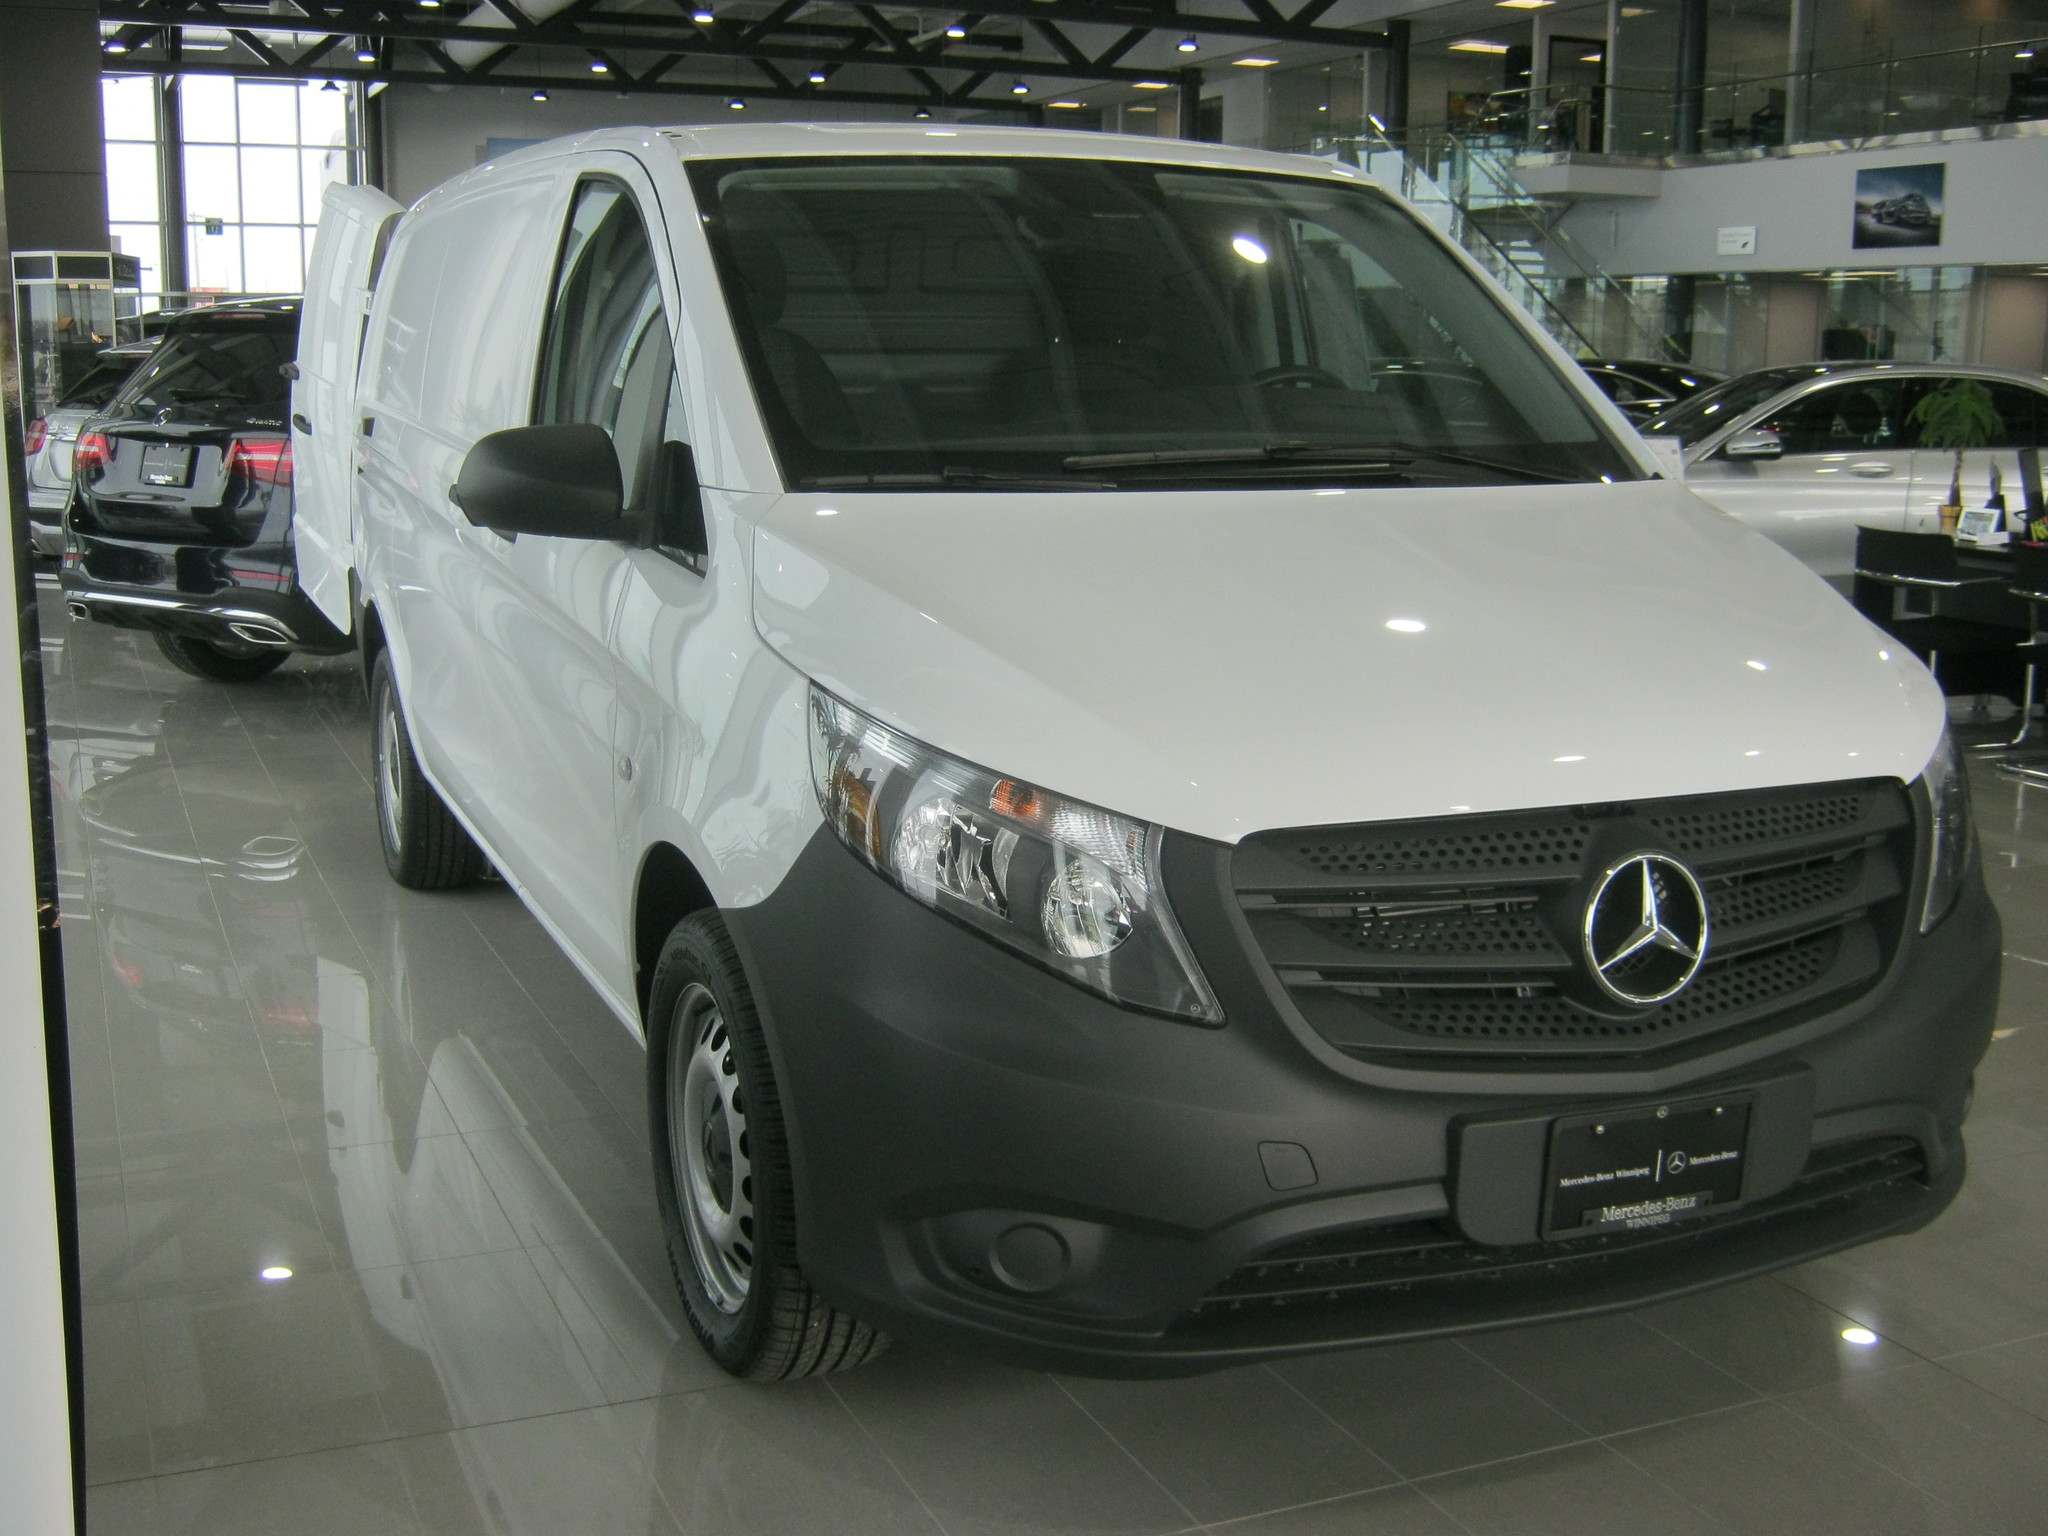 Myron Love / Winnipeg Free PressThe new Mercedes-Benz Metris can be adapted for commercial or passenger use.